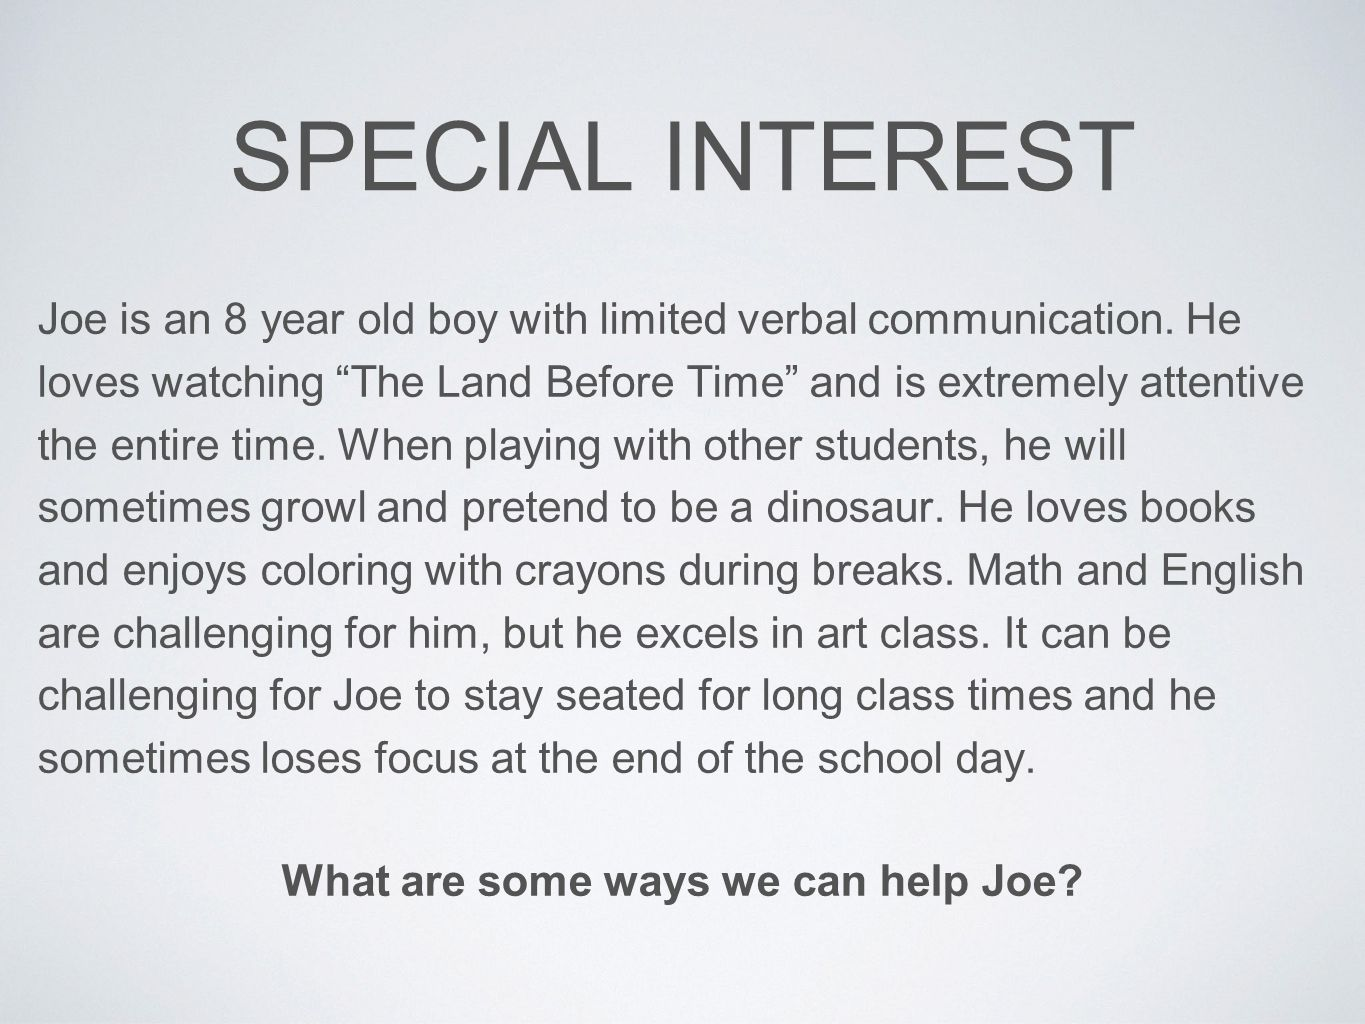 What are some ways we can help Joe